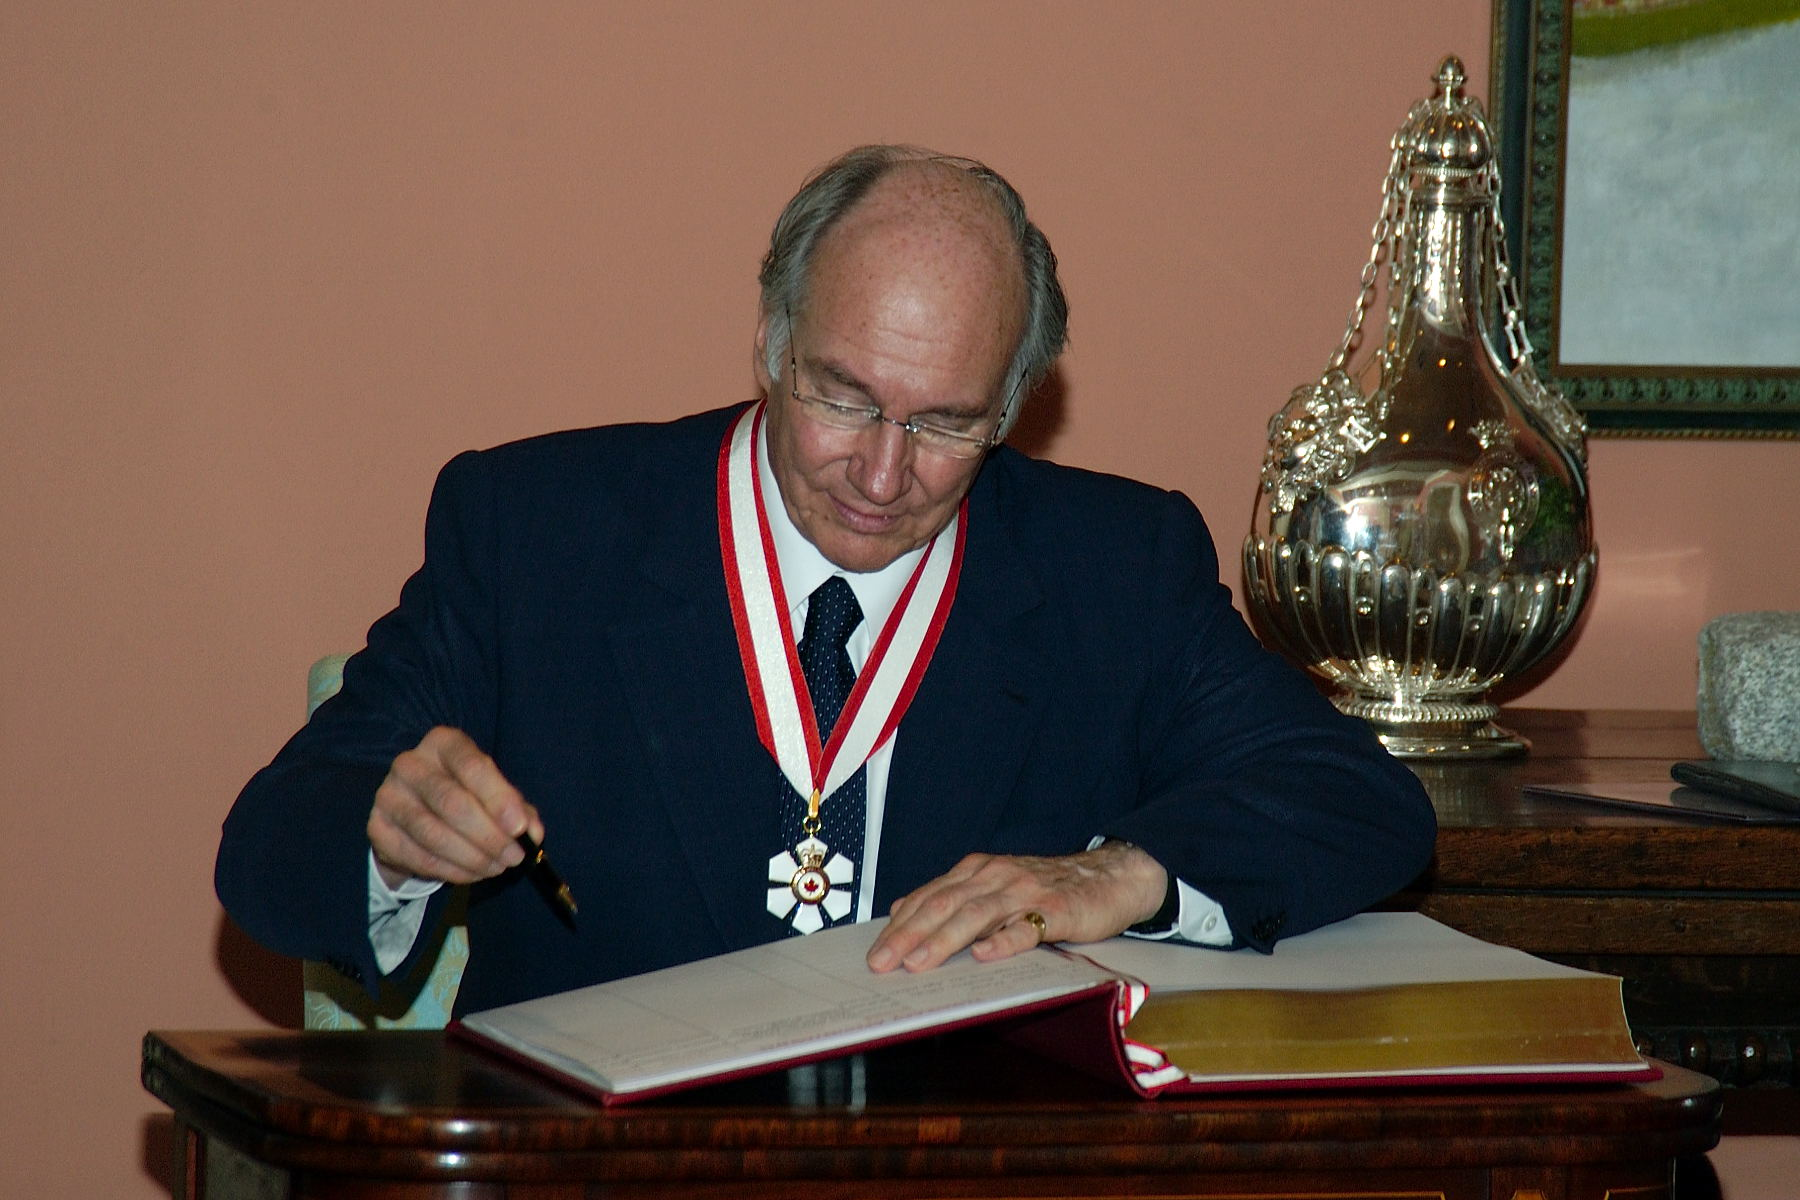 Order of Canada decoration to His Highness the Aga Khan Barakah and Simerg